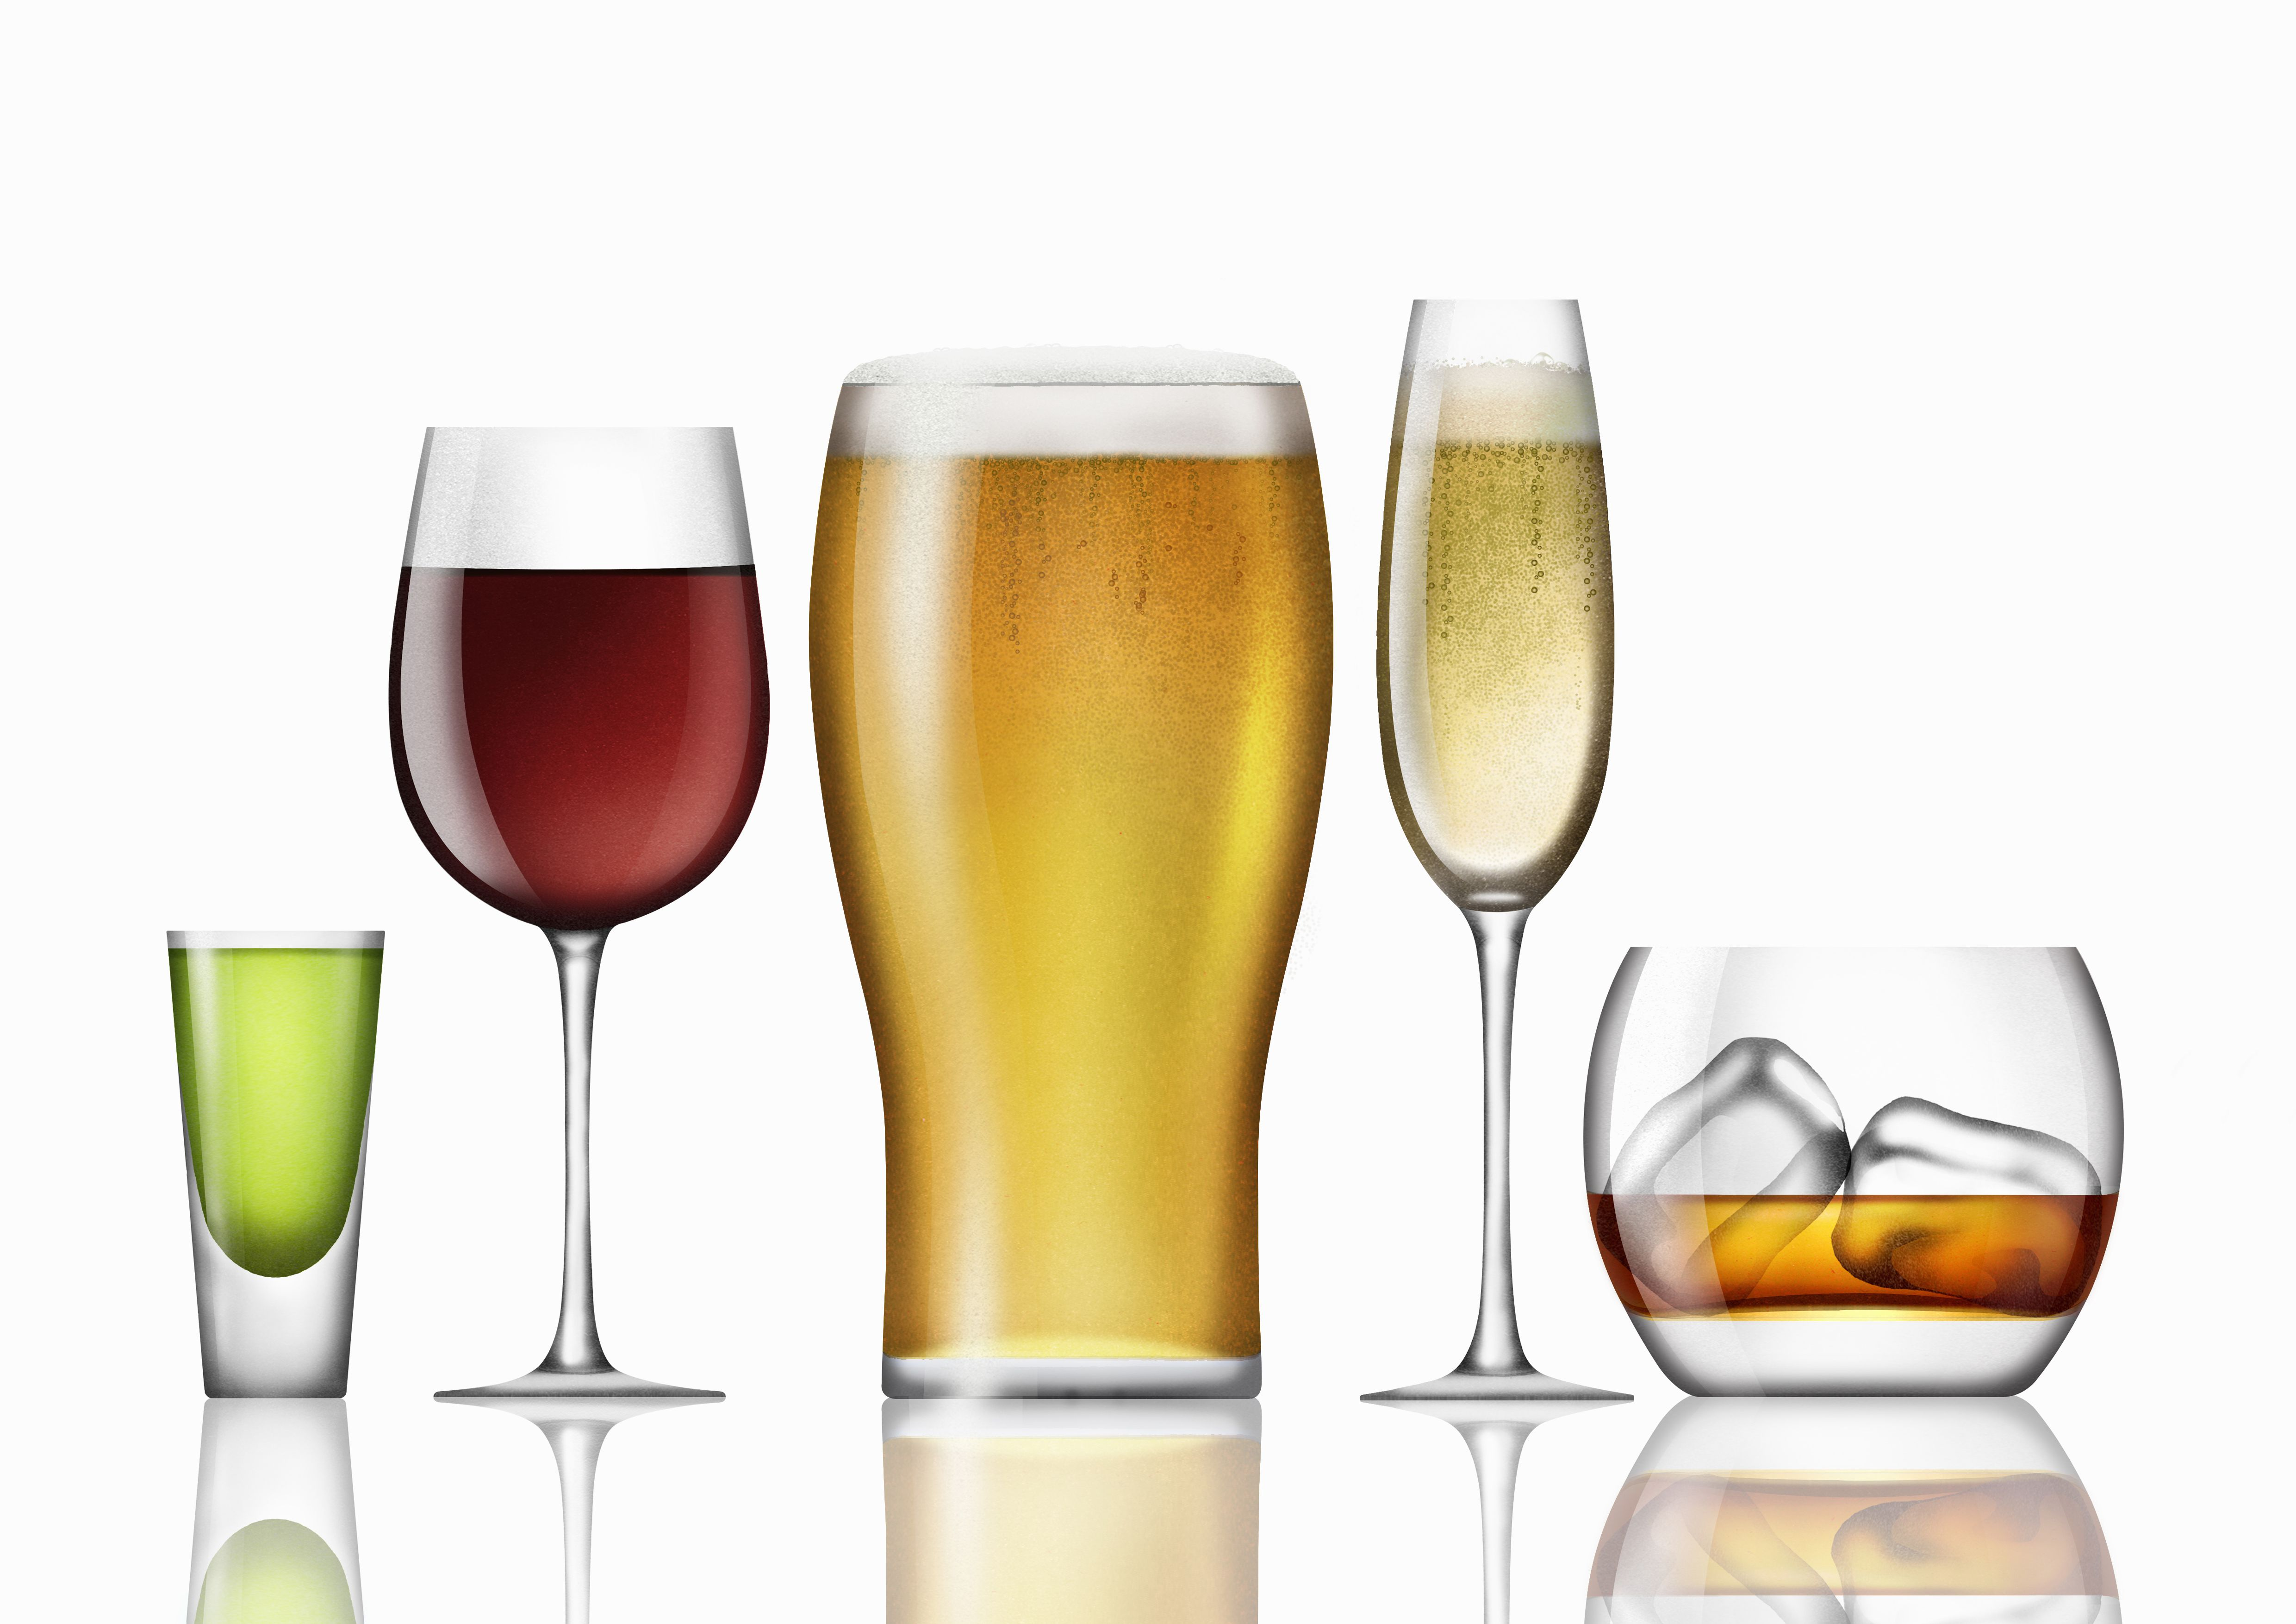 Where Do Alcoholic Beverages Come From?